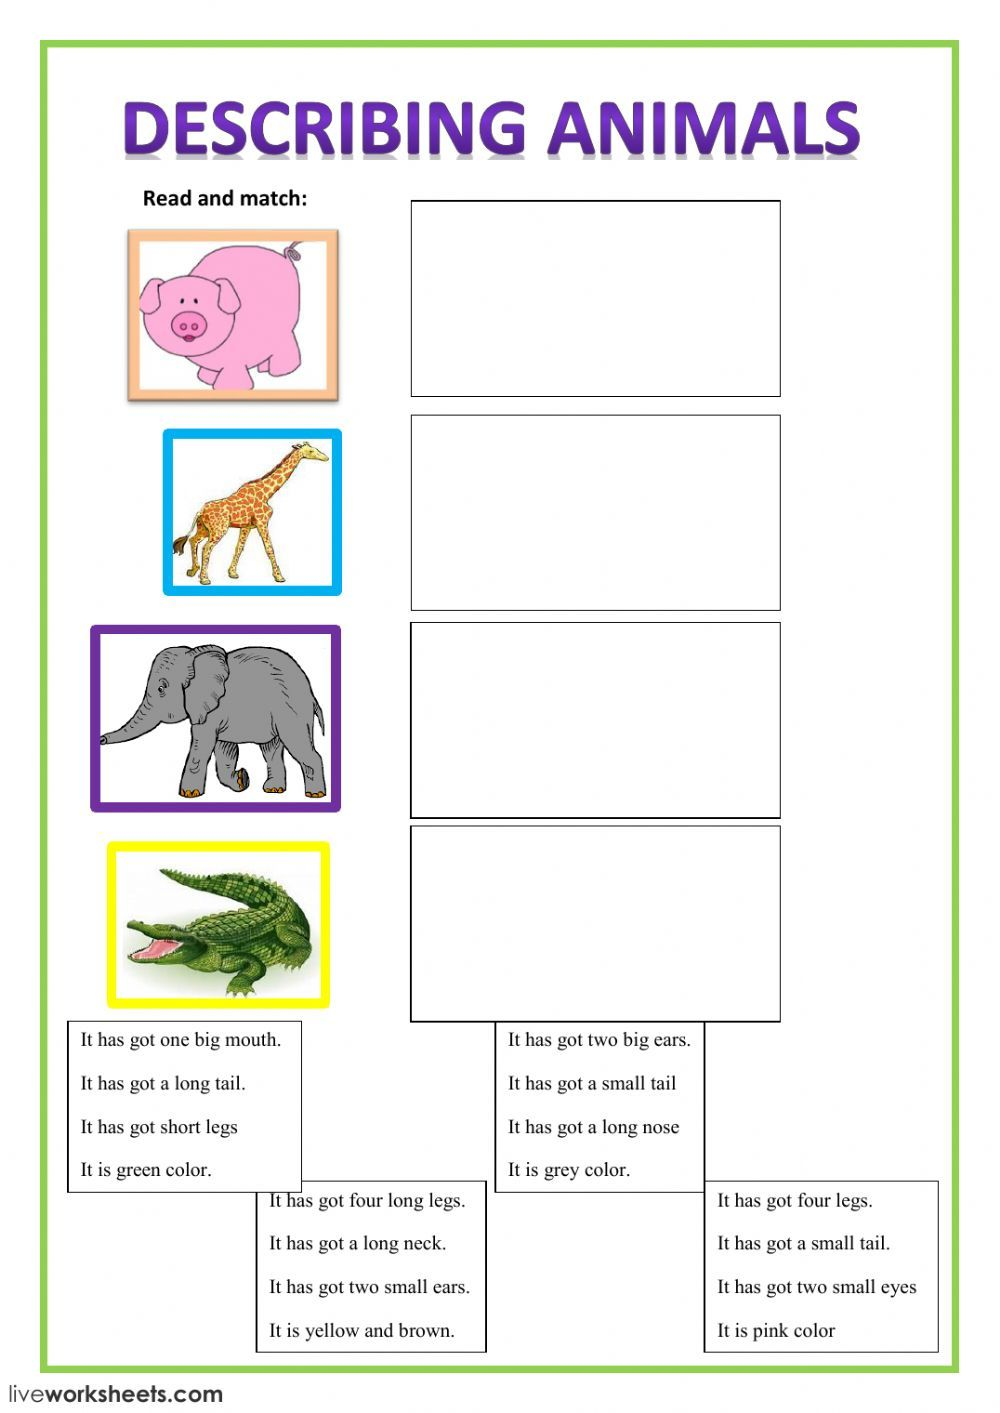 Have got Has got interactive and downloadable worksheet